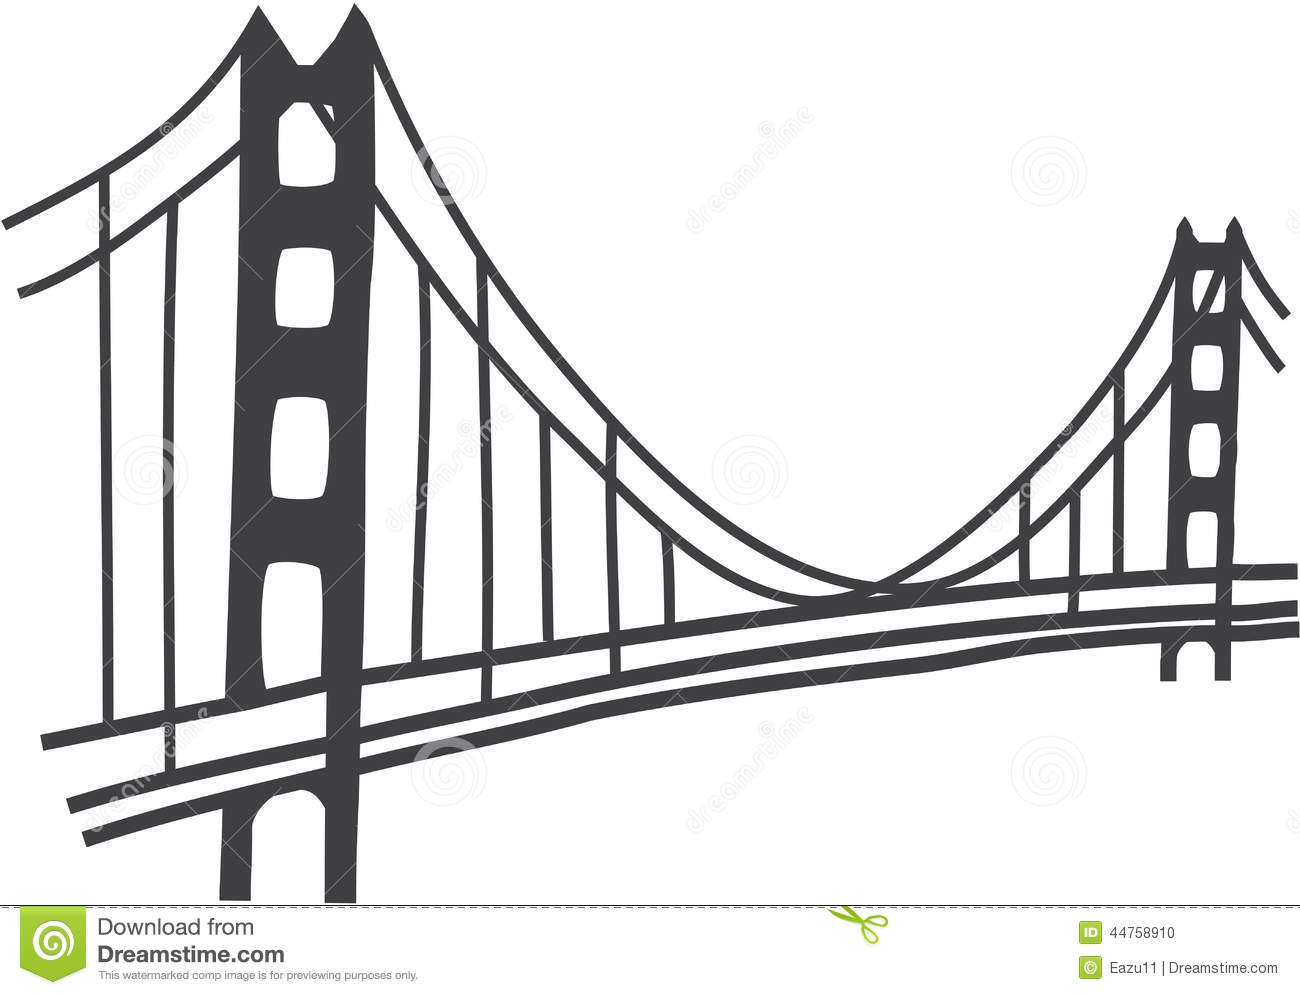 Dibujo de puente Golden Gate